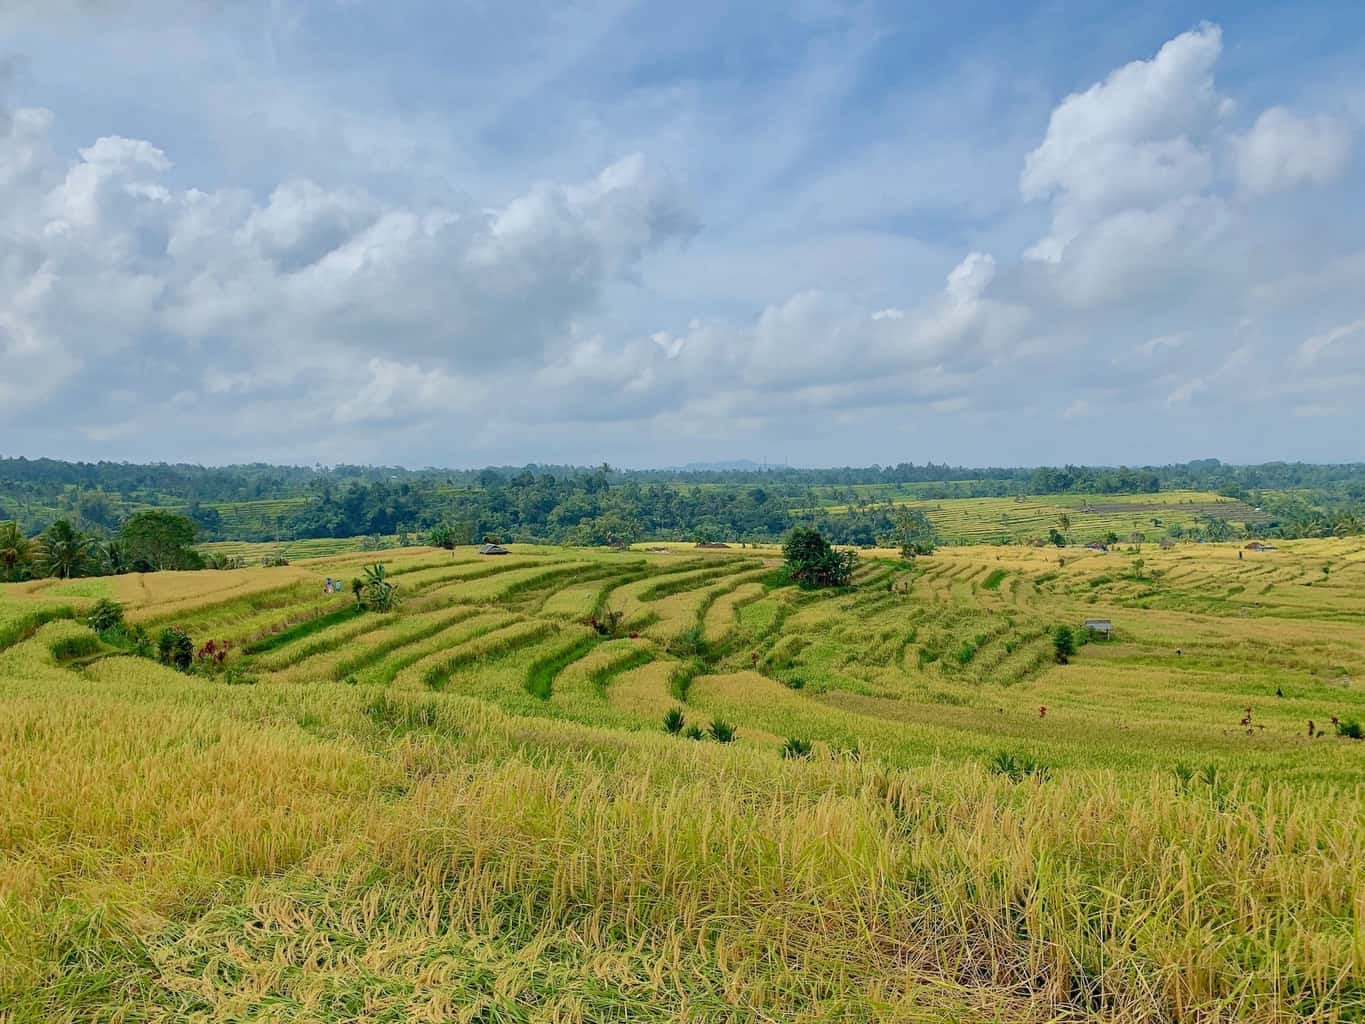 A Guide to the Jatiluwih Rice Terraces | Trekking, Map, Views & More!